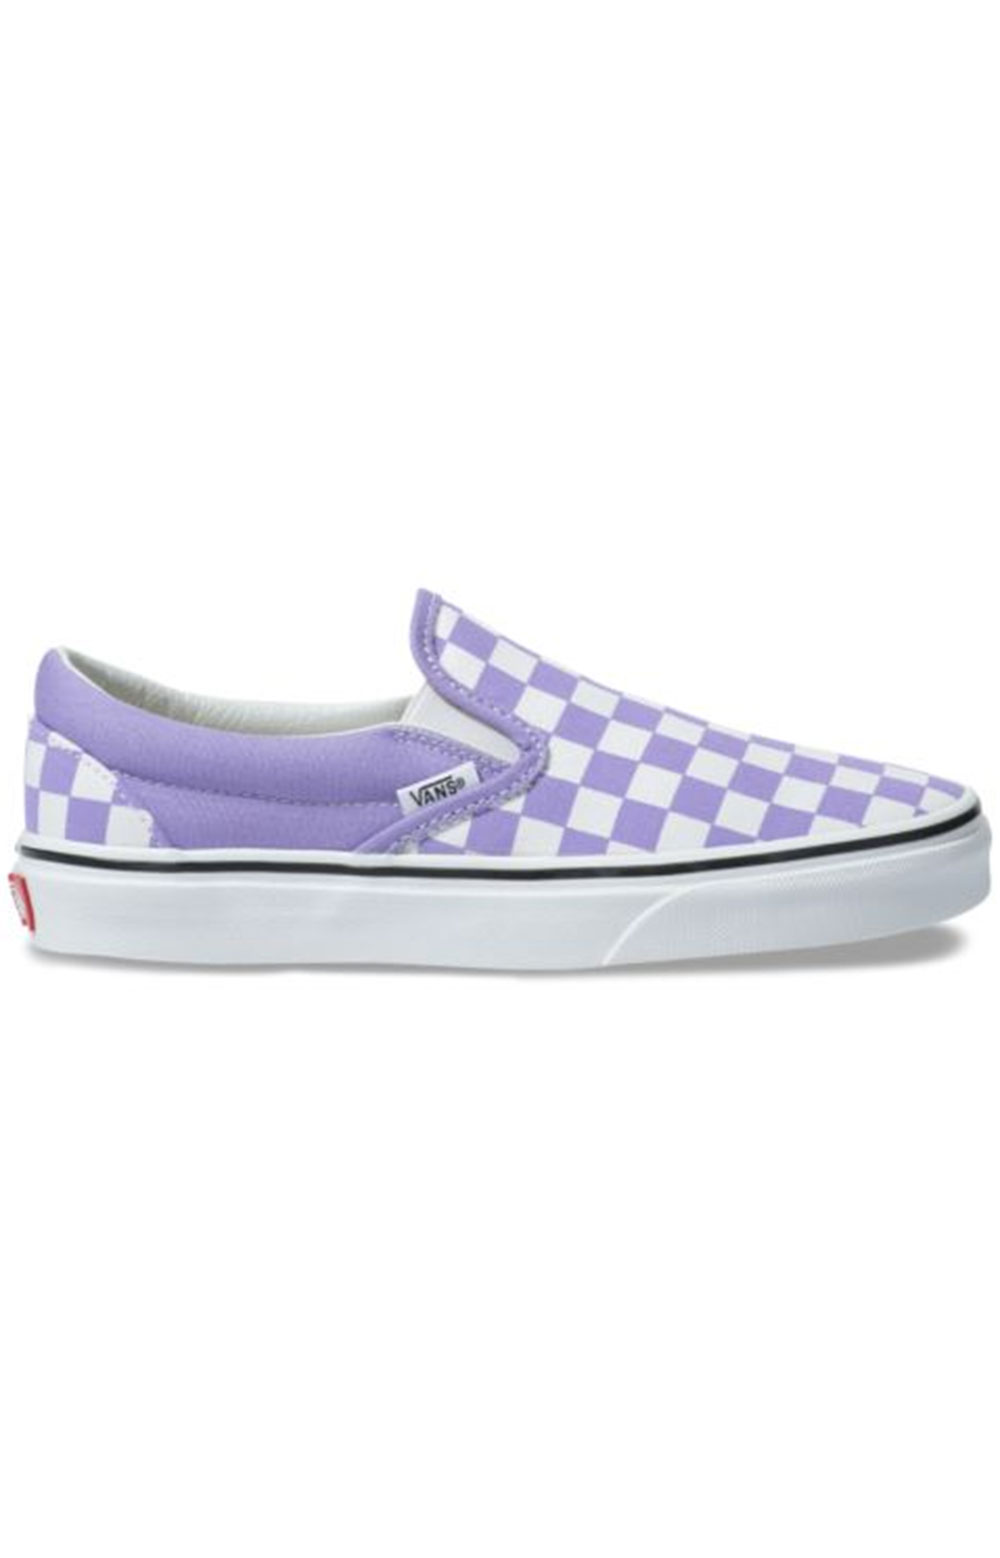 (8F7VLX) Checkerboard Classic Slip-On Shoe - Violet Tulip